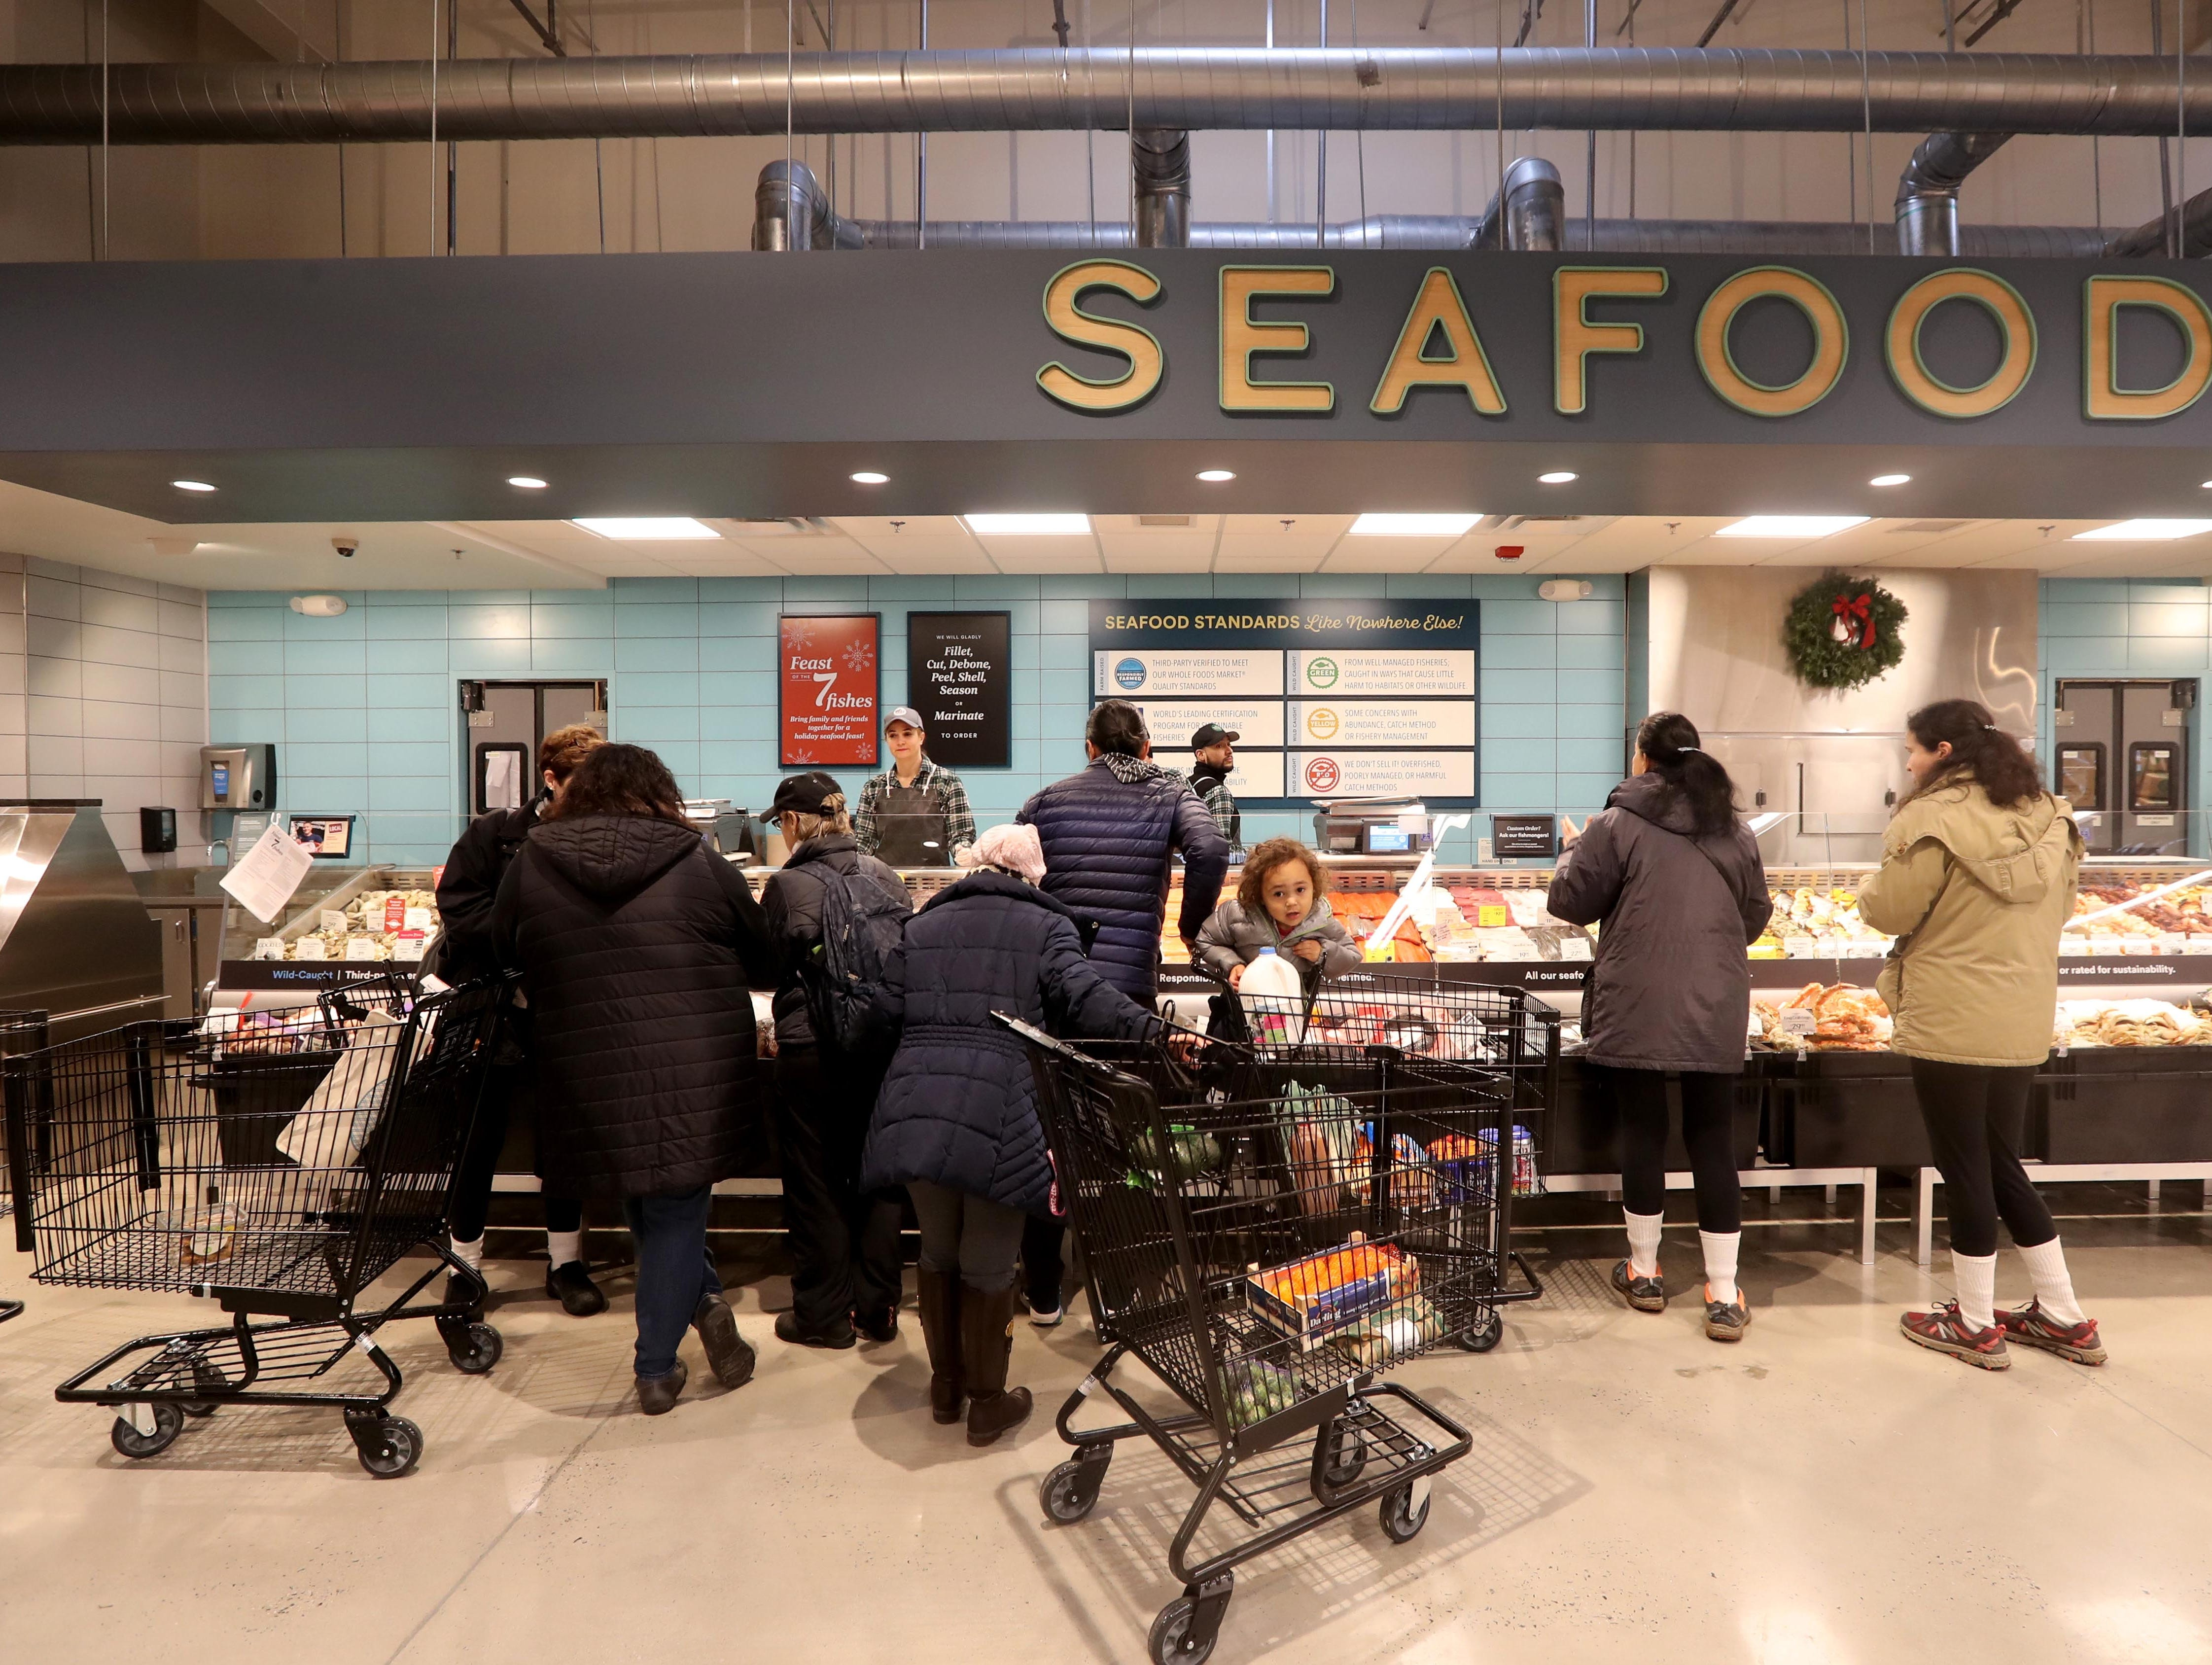 Shoppers stop by the seafood section at the new Whole Foods in Chappaqua Dec. 15, 2018. The 40,000 square foot store opened to shoppers on the site of the formers Readers Digest headquarters. The New Castle Town Board and Planning Board approved a temporary traffic plan for the Route 117-Roaring Brook Road intersection that allowed the store to open.